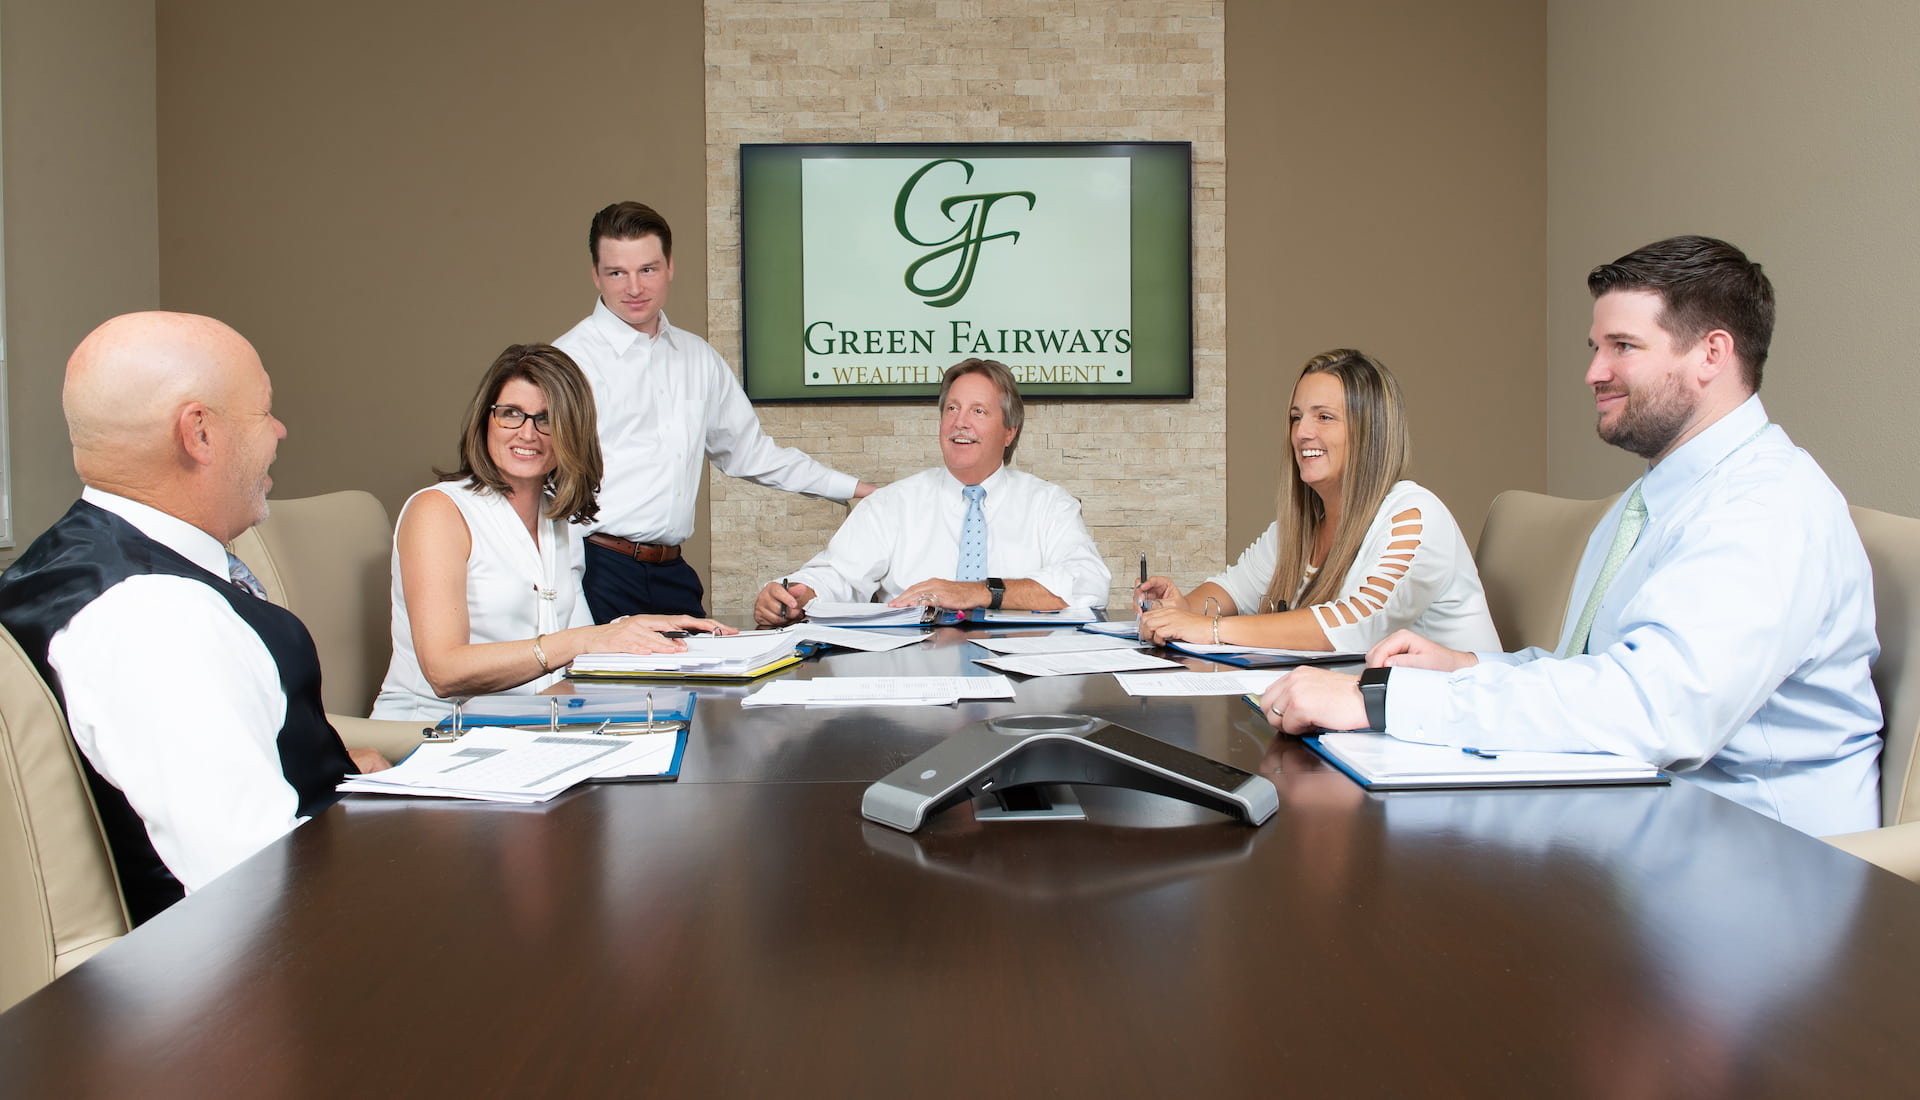 The Green Fairways Wealth Management team sitting around a conference room table